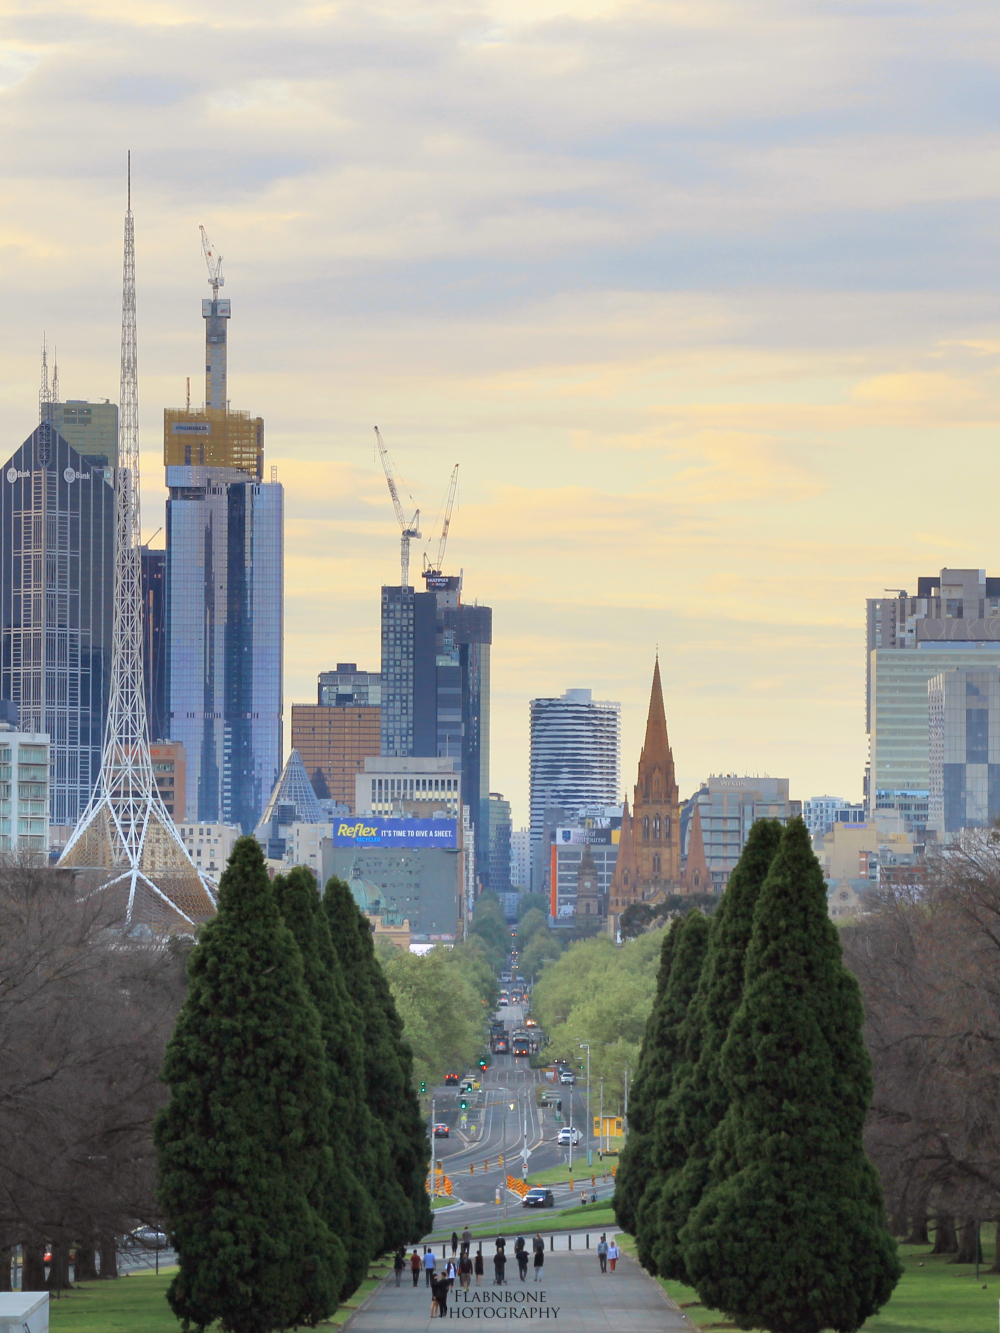 Melbourne CBD from Shrine of Rememberance